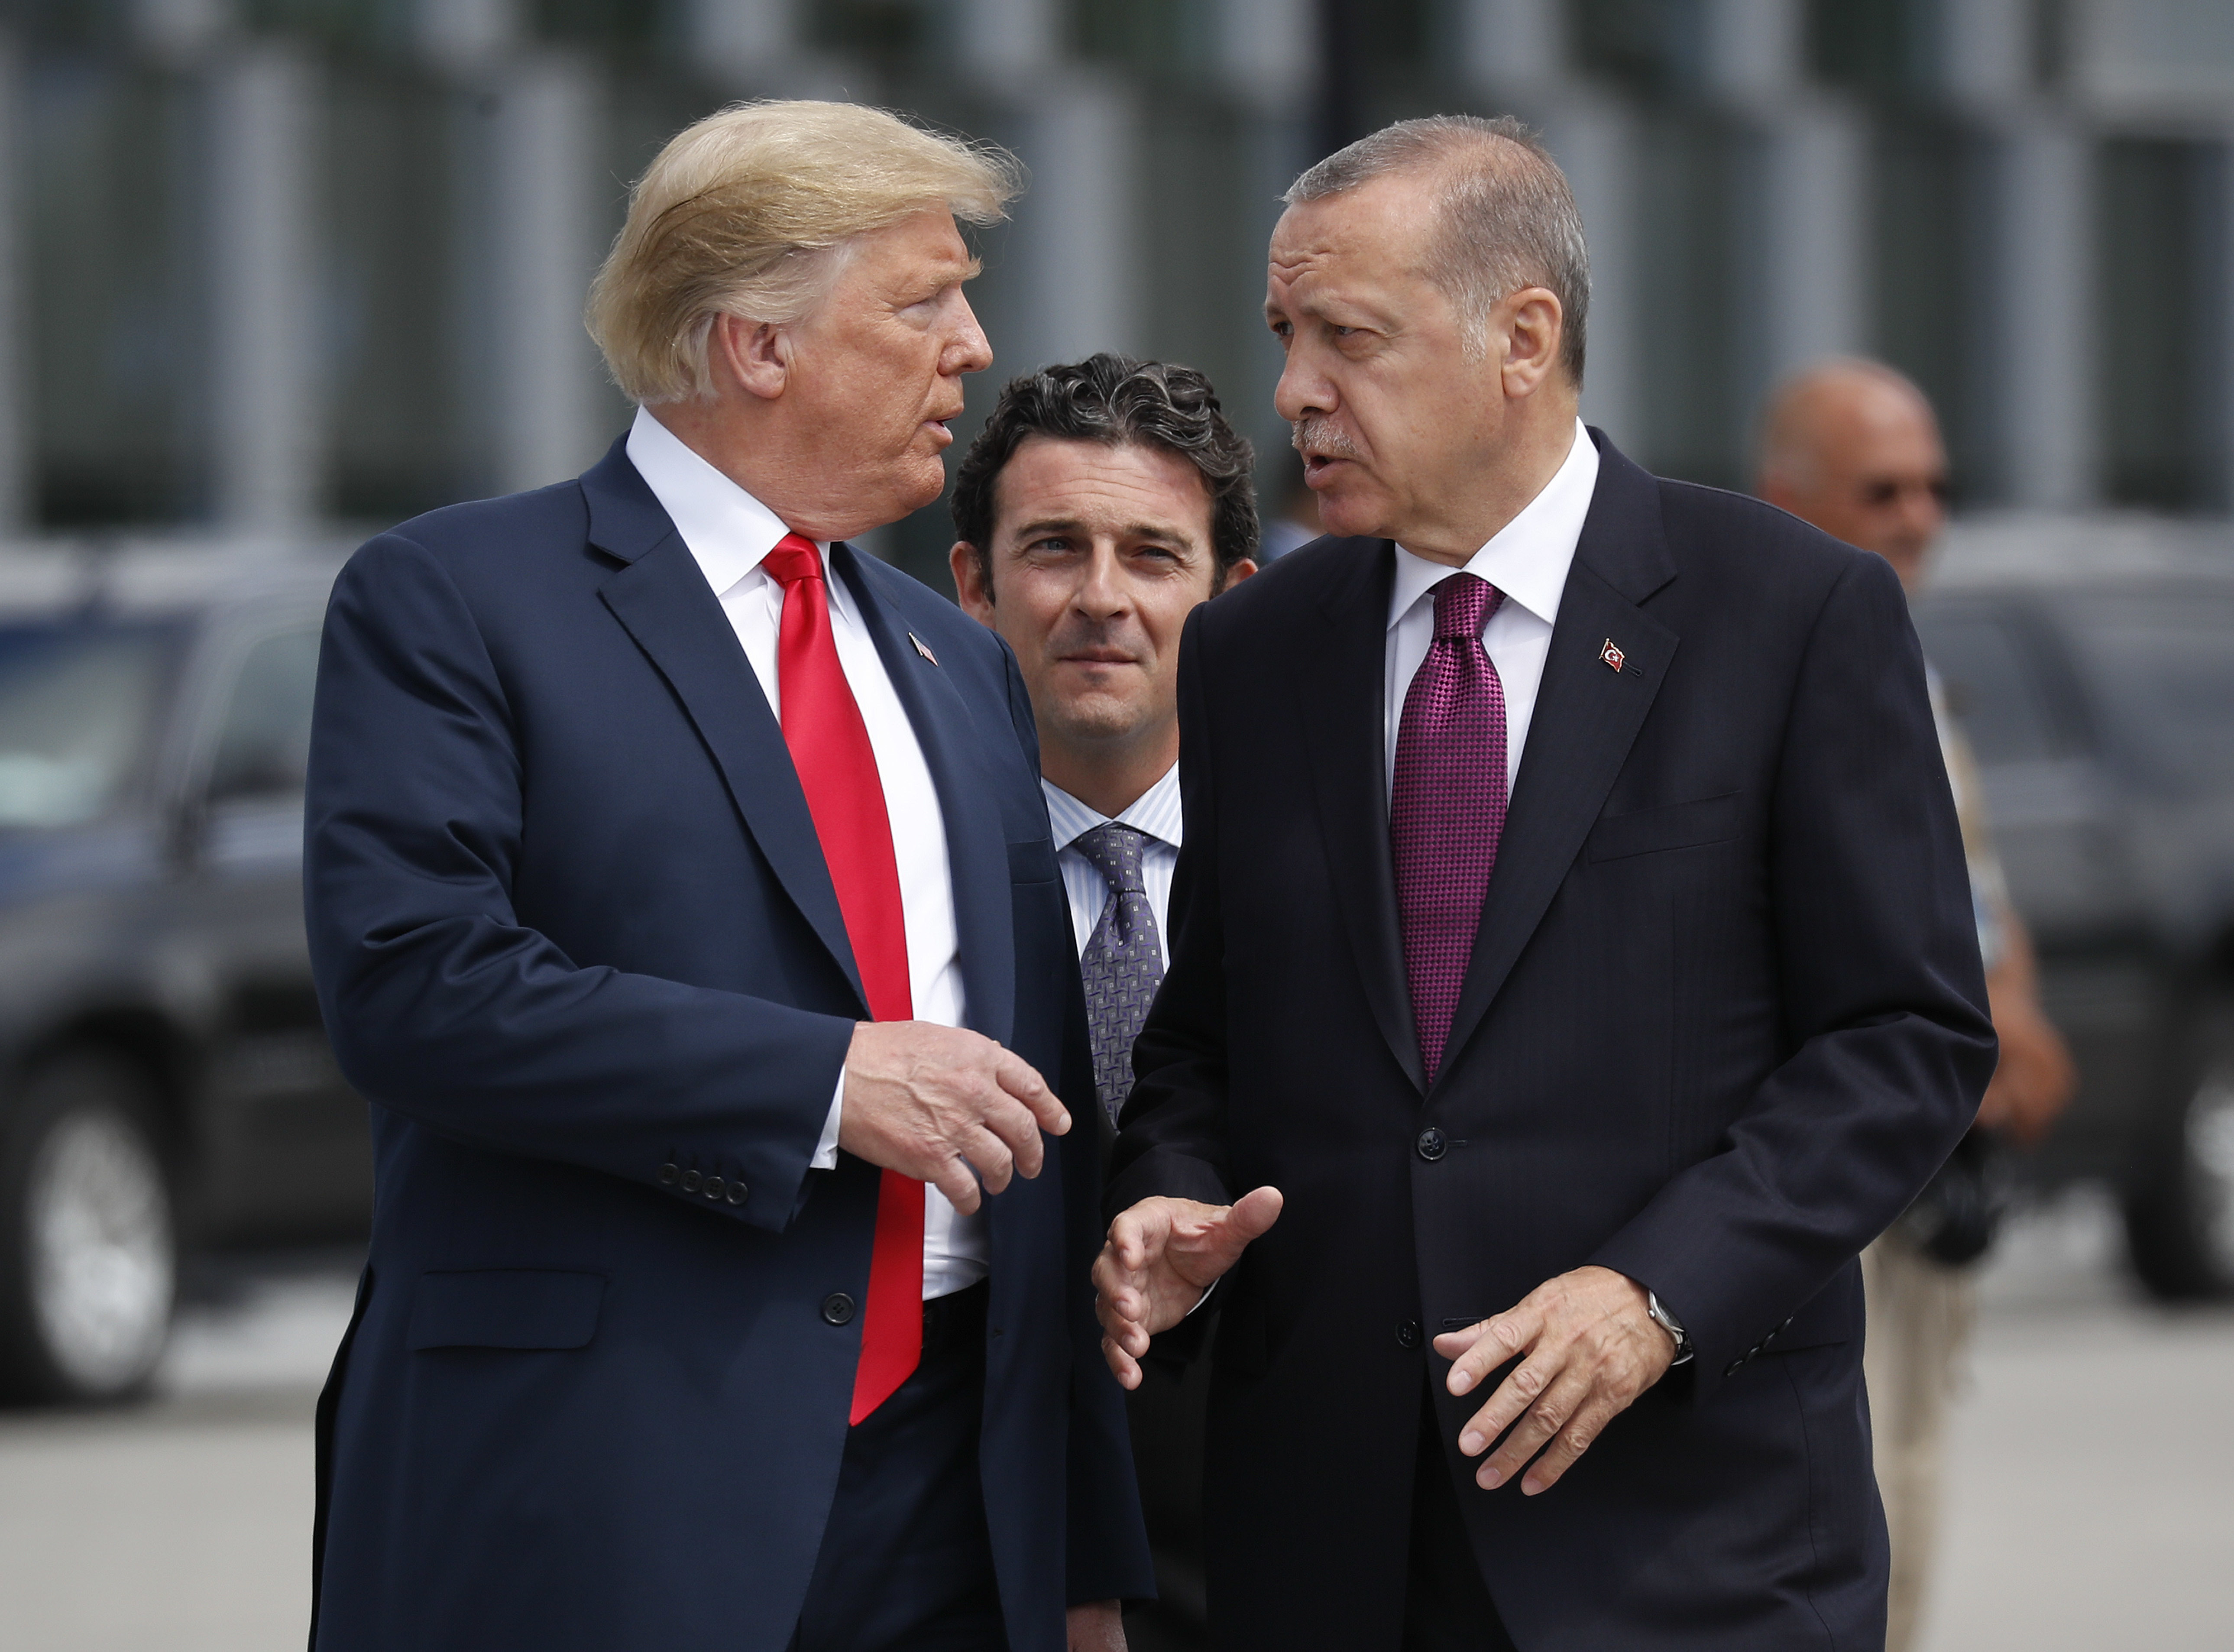 In this Wednesday, July 11, 2018, file photo, President Donald Trump, left, talks with Turkey's President Recep Tayyip Erdogan, as they arrive together for a family photo at a summit of heads of state and government at NATO headquarters in Brussels. The White House says Turkey will soon invade Northern Syria, casting uncertainty on the fate of the Kurdish fighters allied with the U.S. against in a campaign against the Islamic State group.